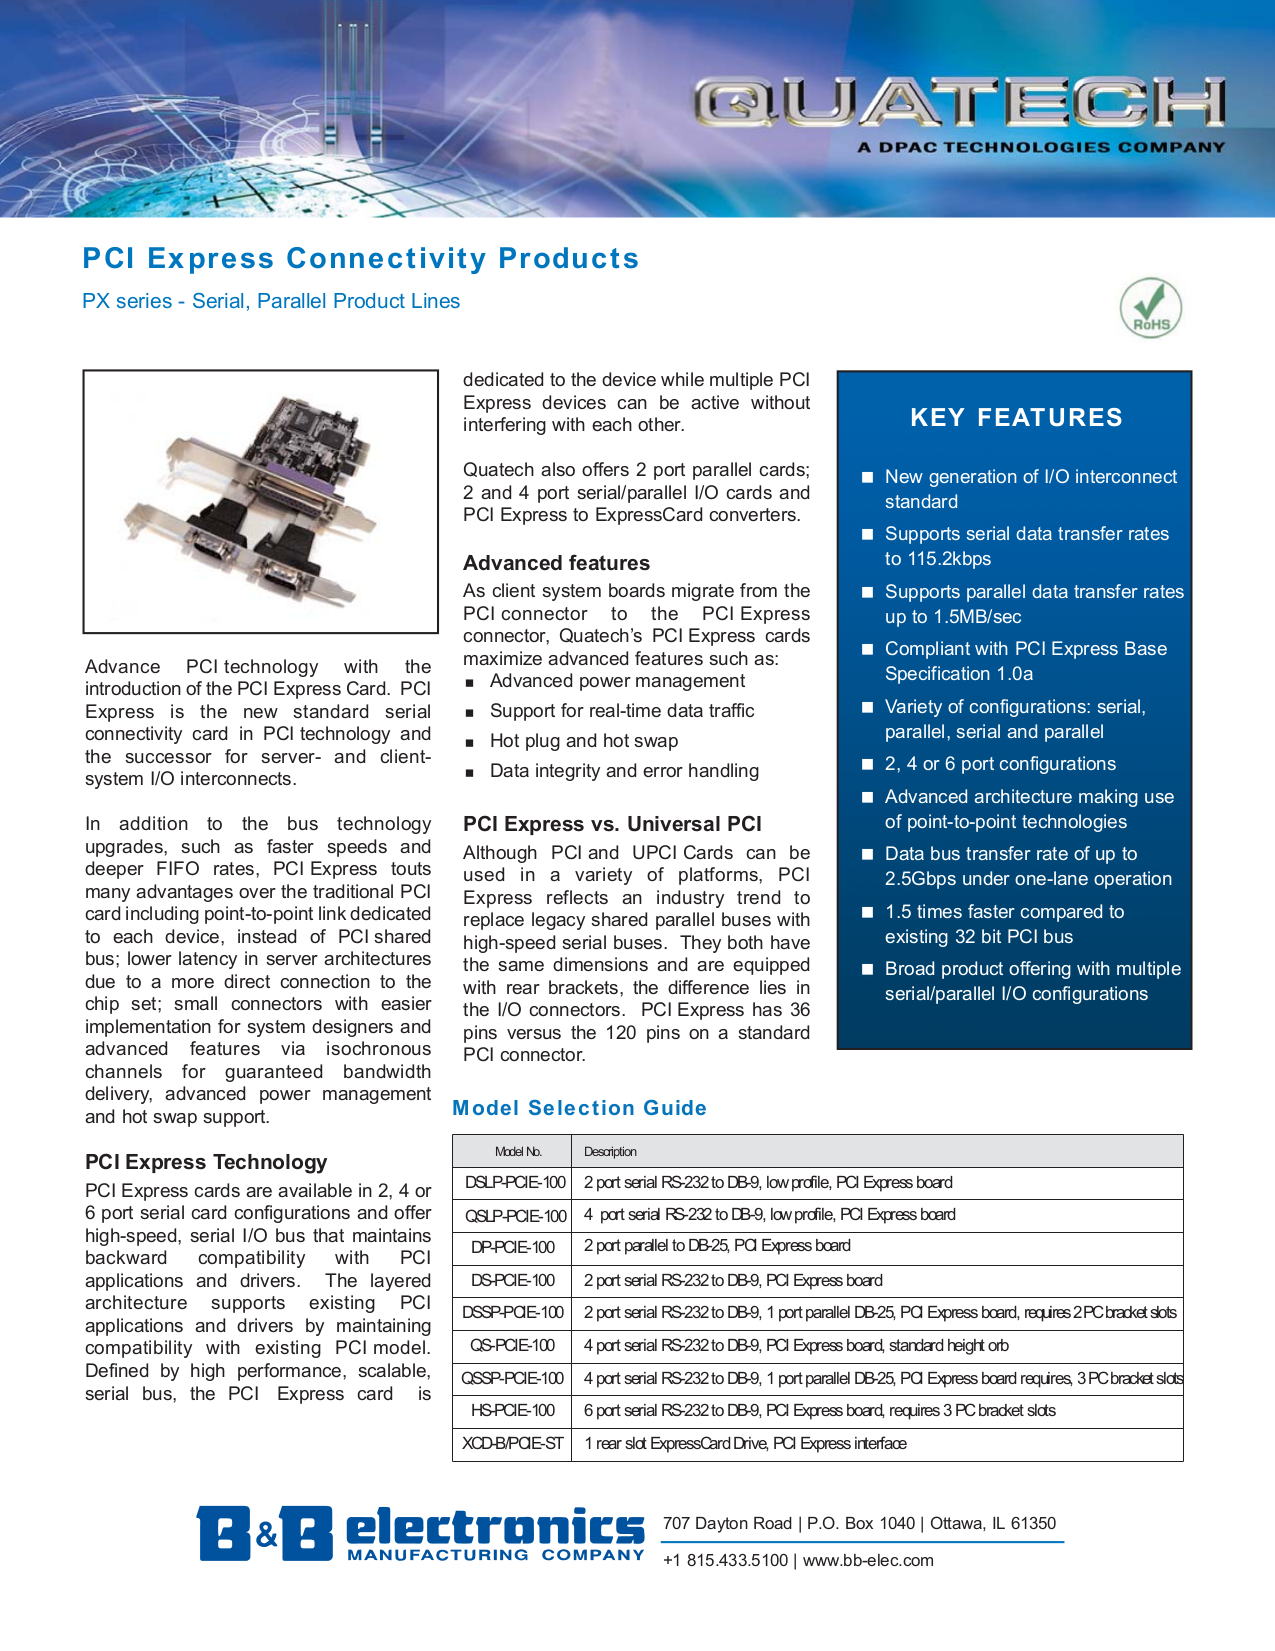 pdf for Quatech Other DP-PCIE-100 PCI Express Devices manual